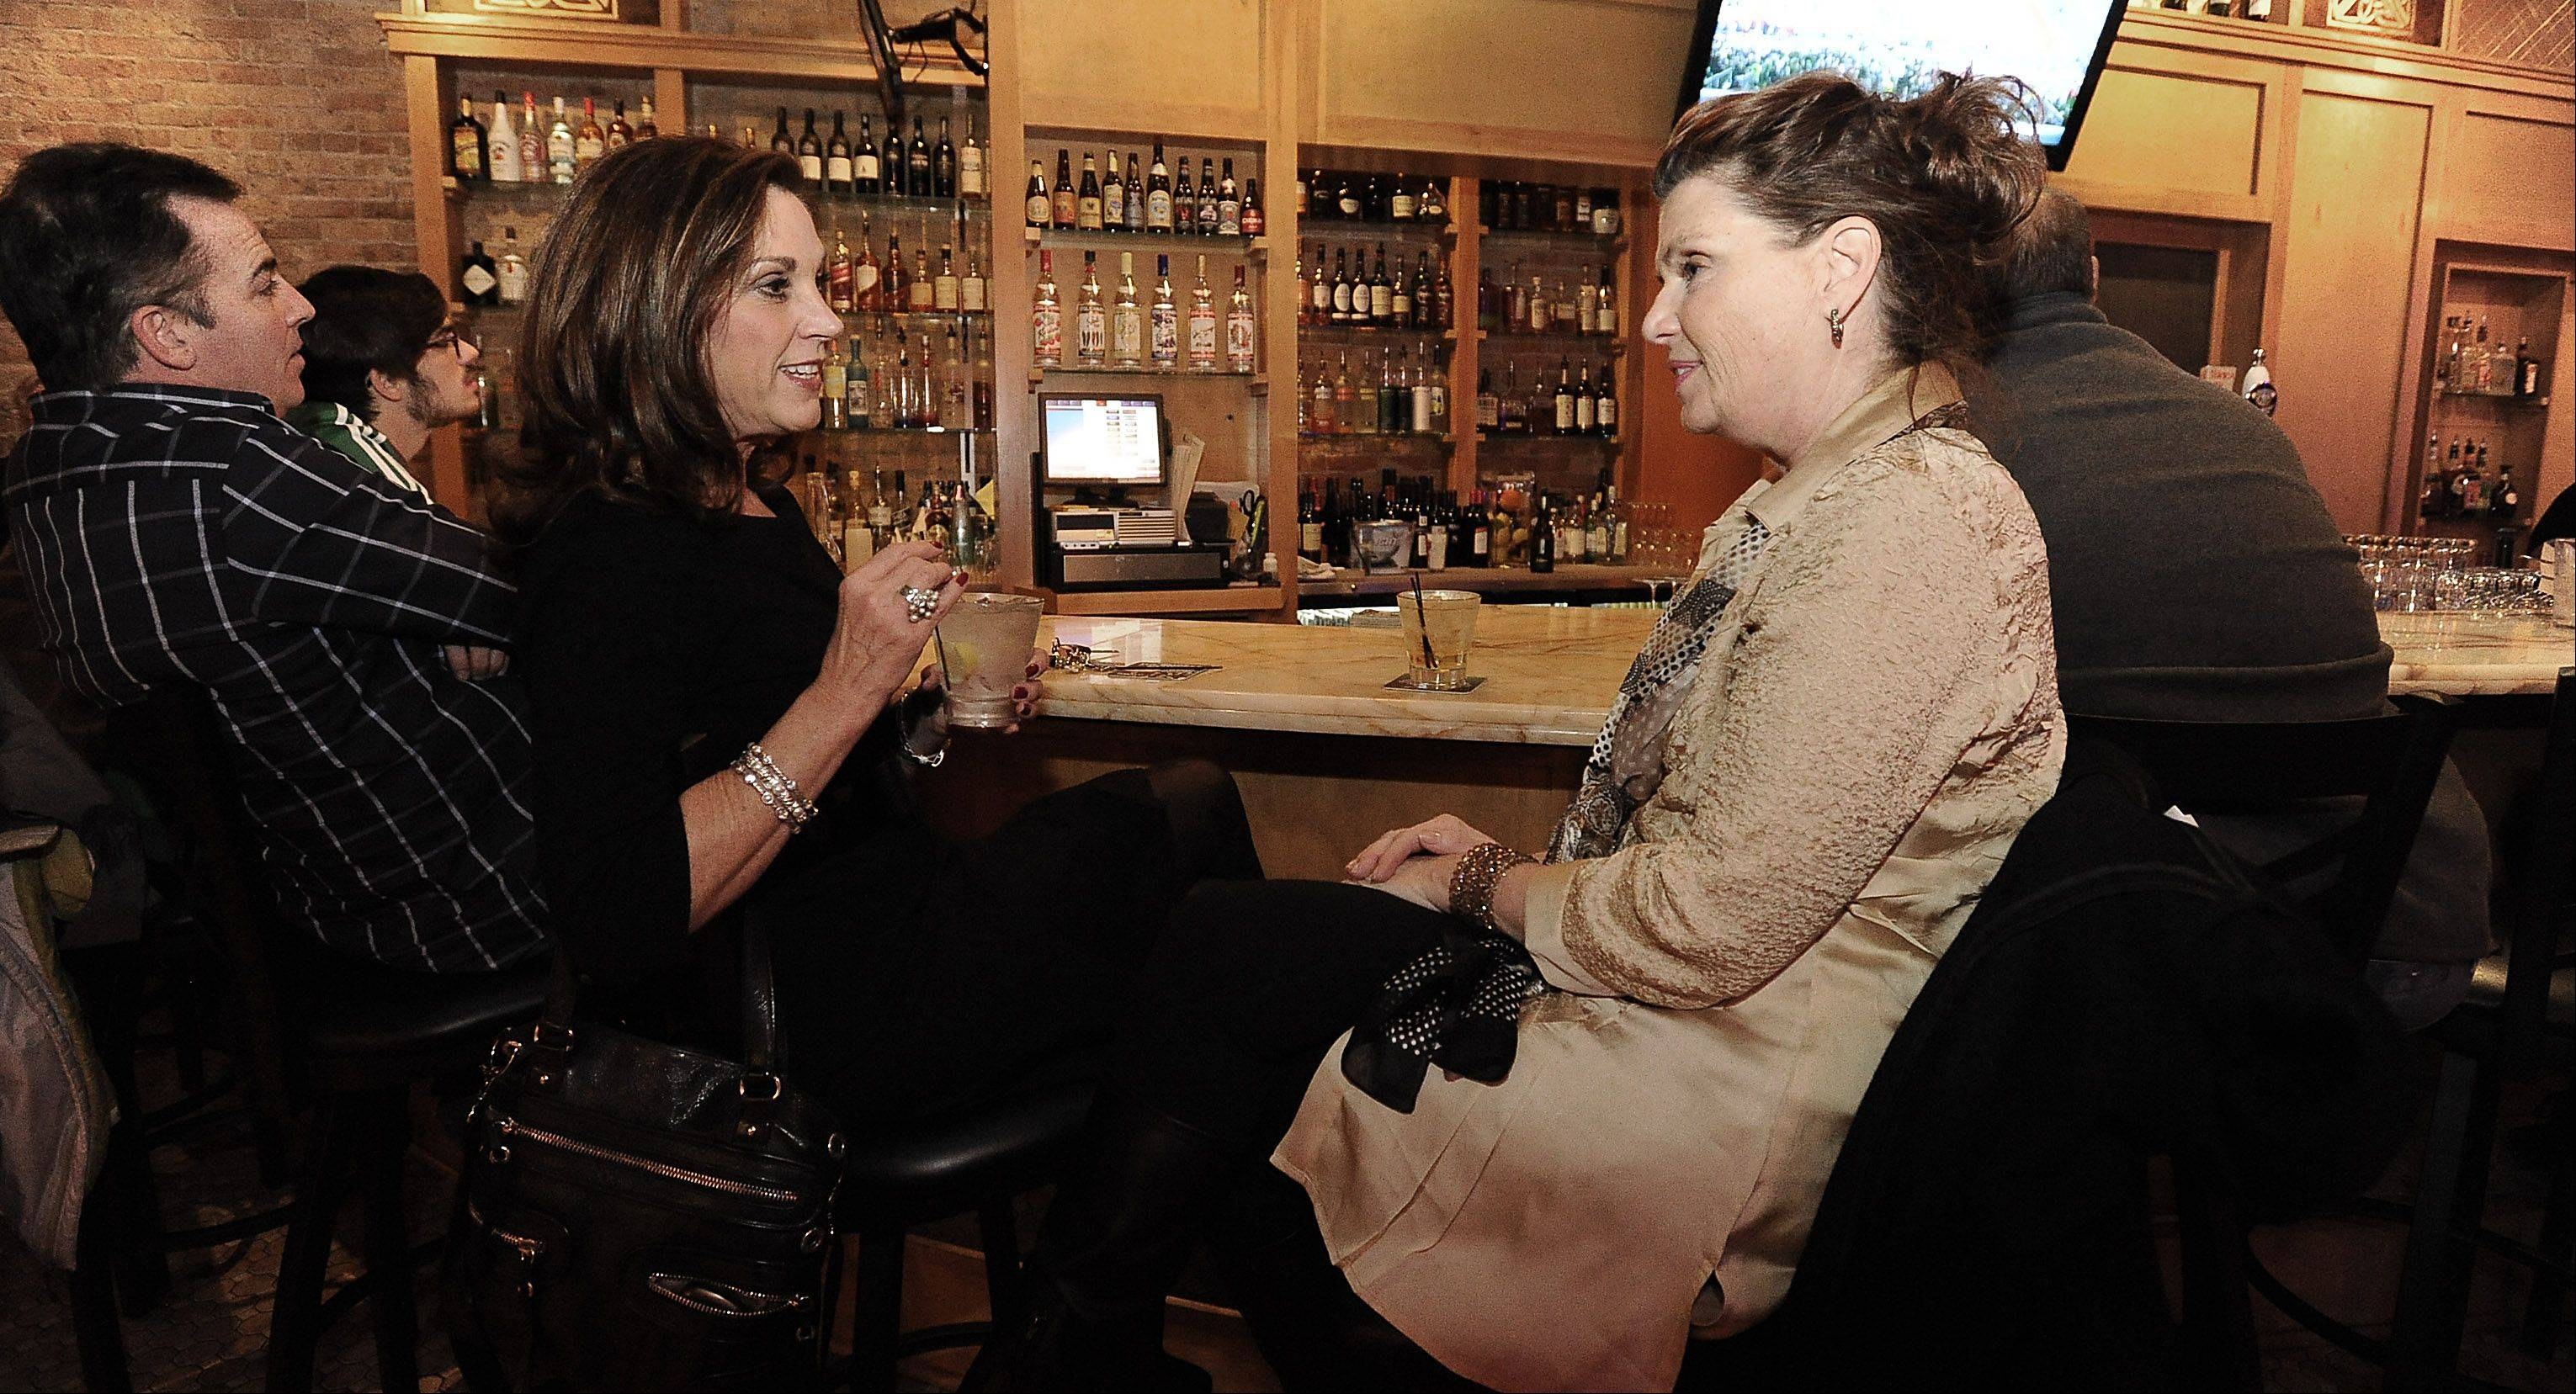 Sandy Canada of Barrington and Kathy Schroeder relax over drinks at The Annex in Barrington.